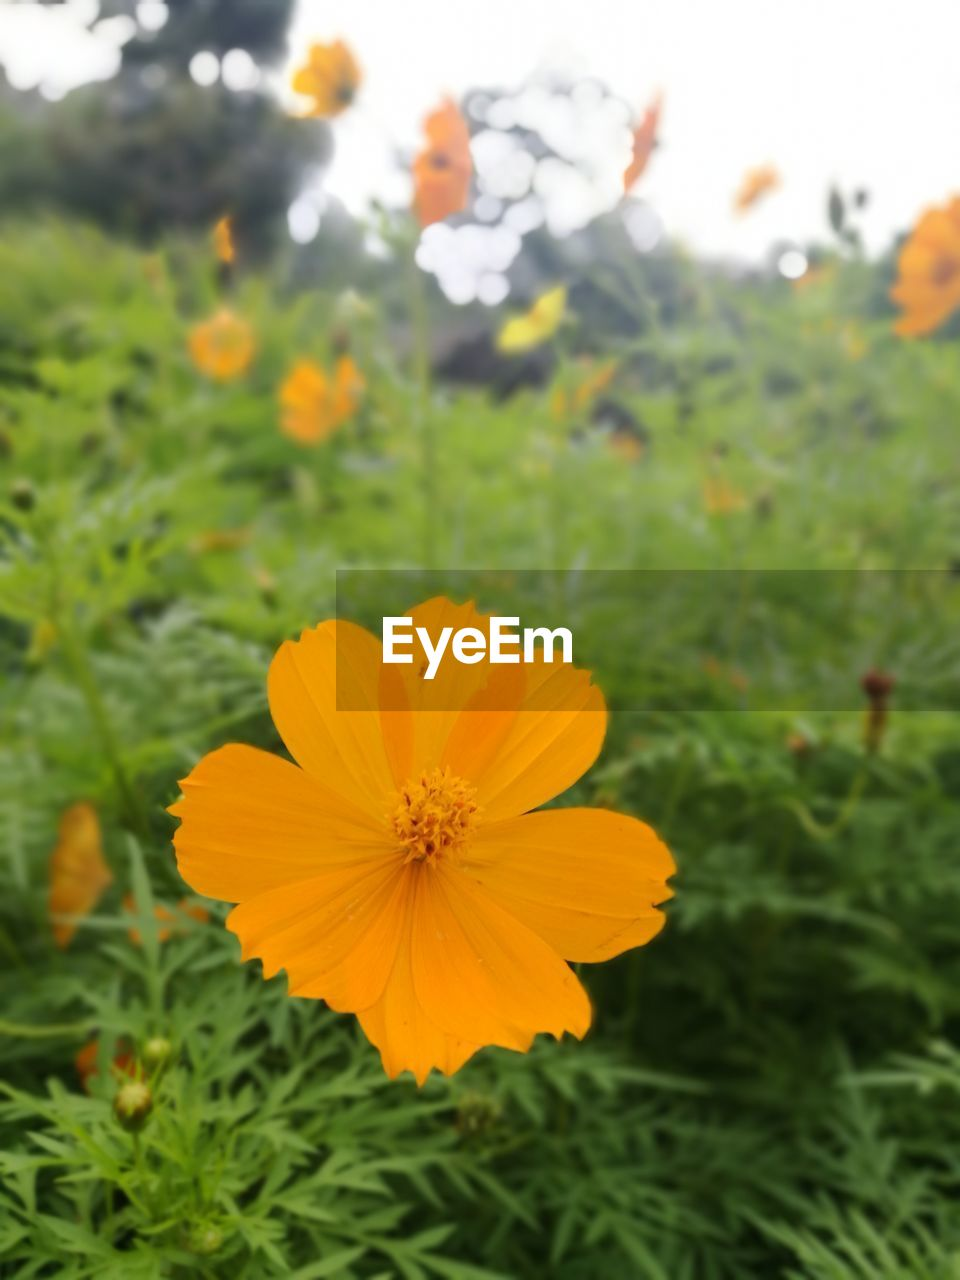 flower, petal, nature, beauty in nature, yellow, growth, flower head, plant, blooming, fragility, freshness, focus on foreground, close-up, outdoors, no people, day, cosmos flower